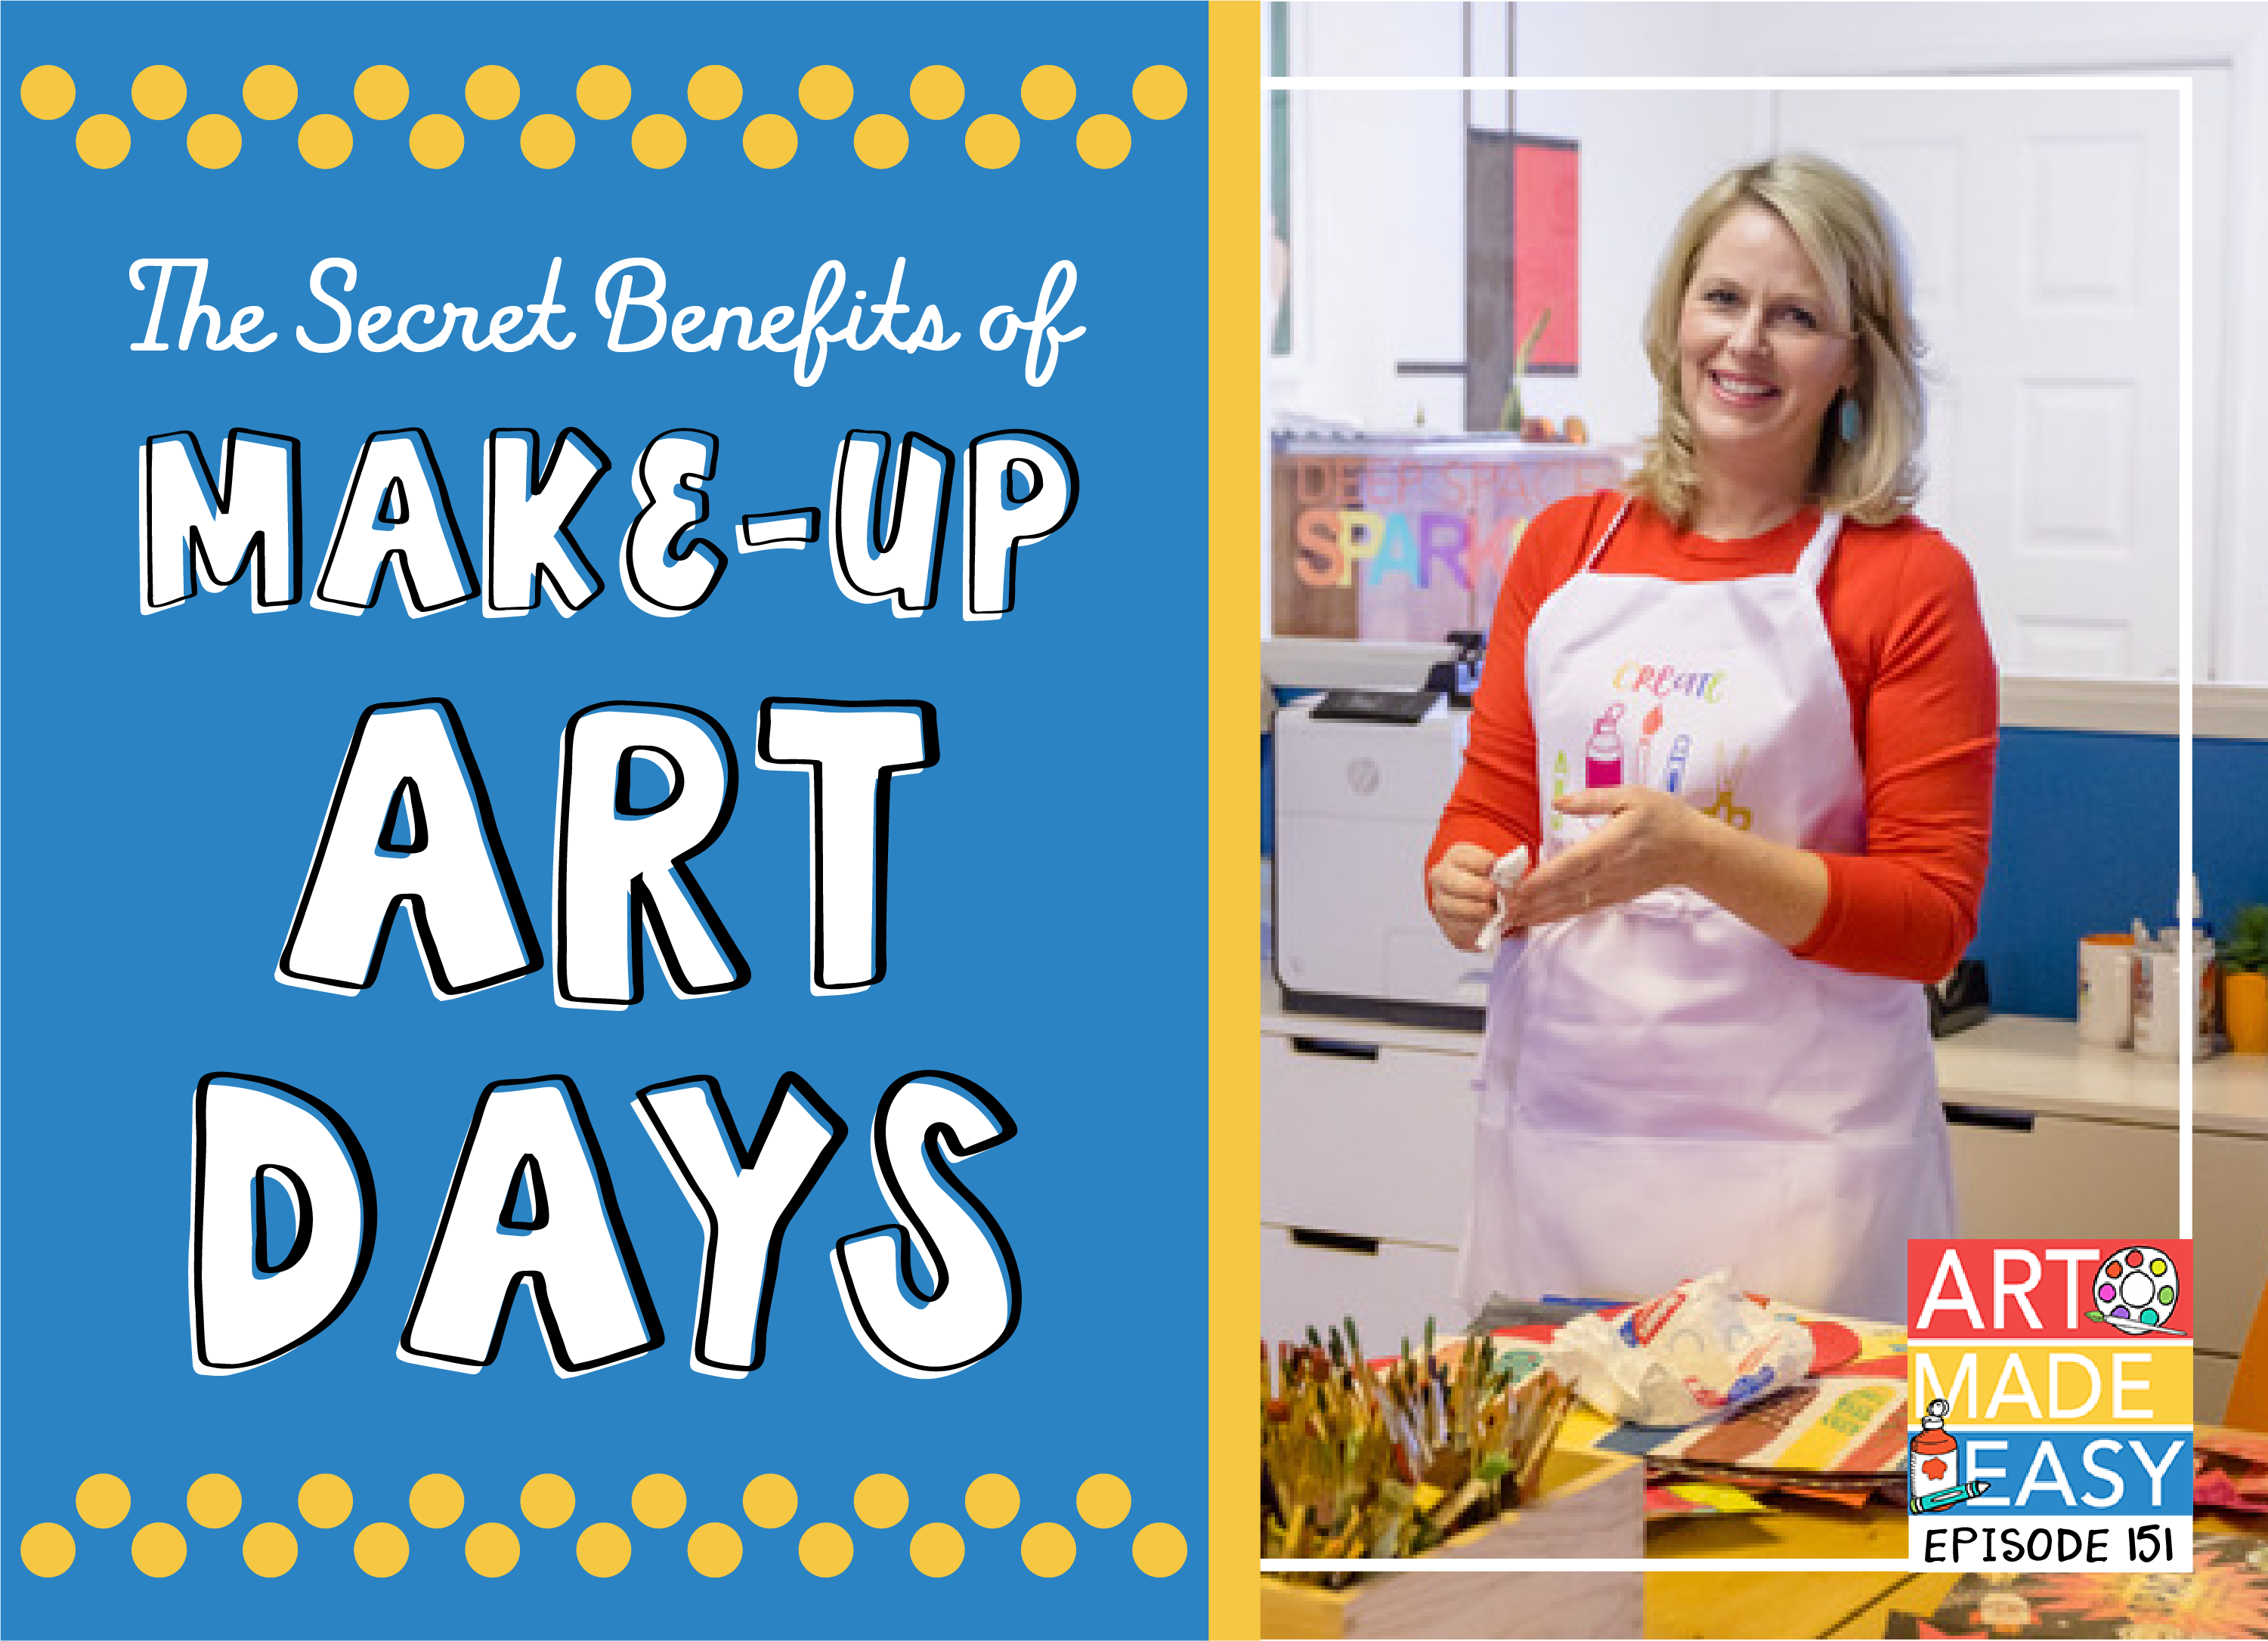 the secret benefits of make-up art days art made easy 151